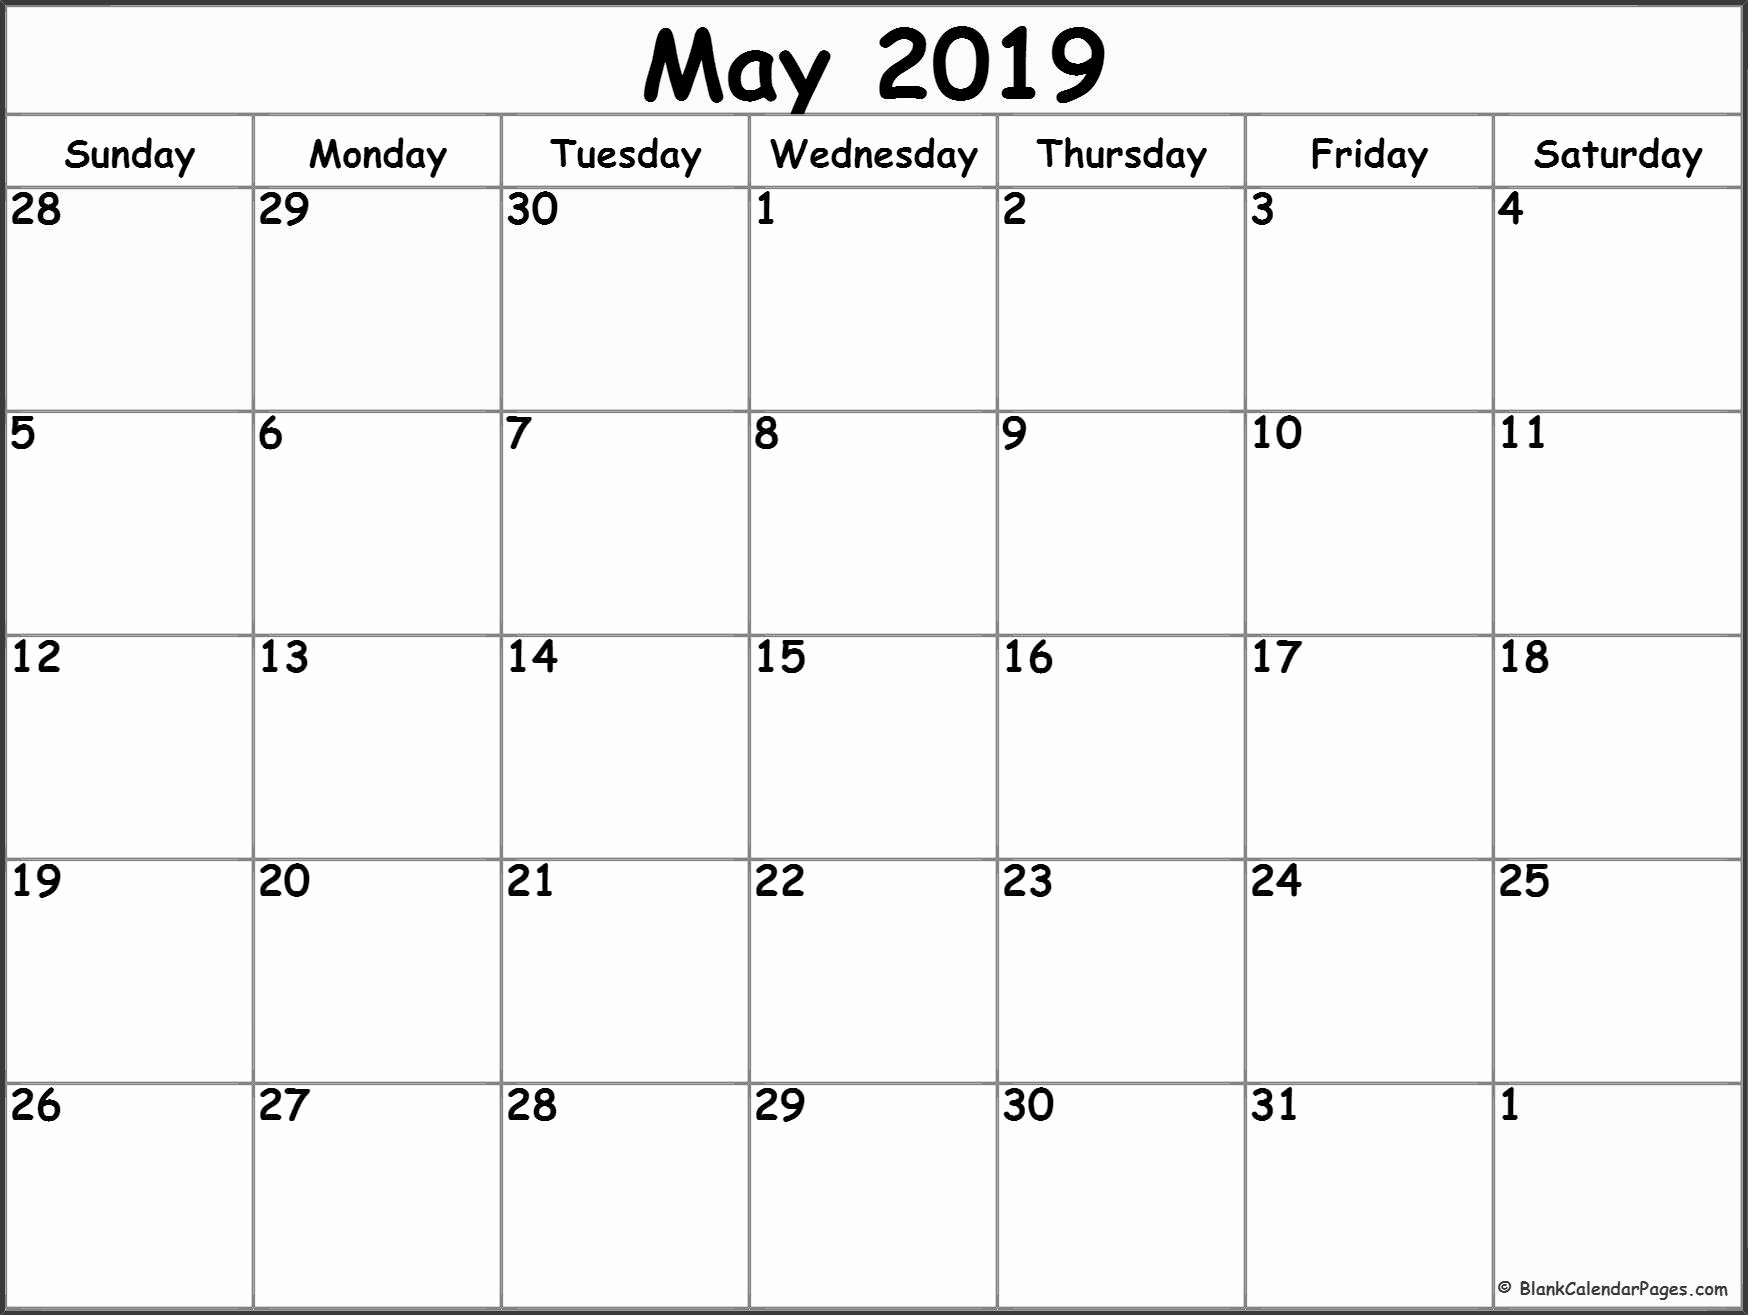 Monthly Calendar Template 2019 Awesome May 2019 Blank Calendar Templates